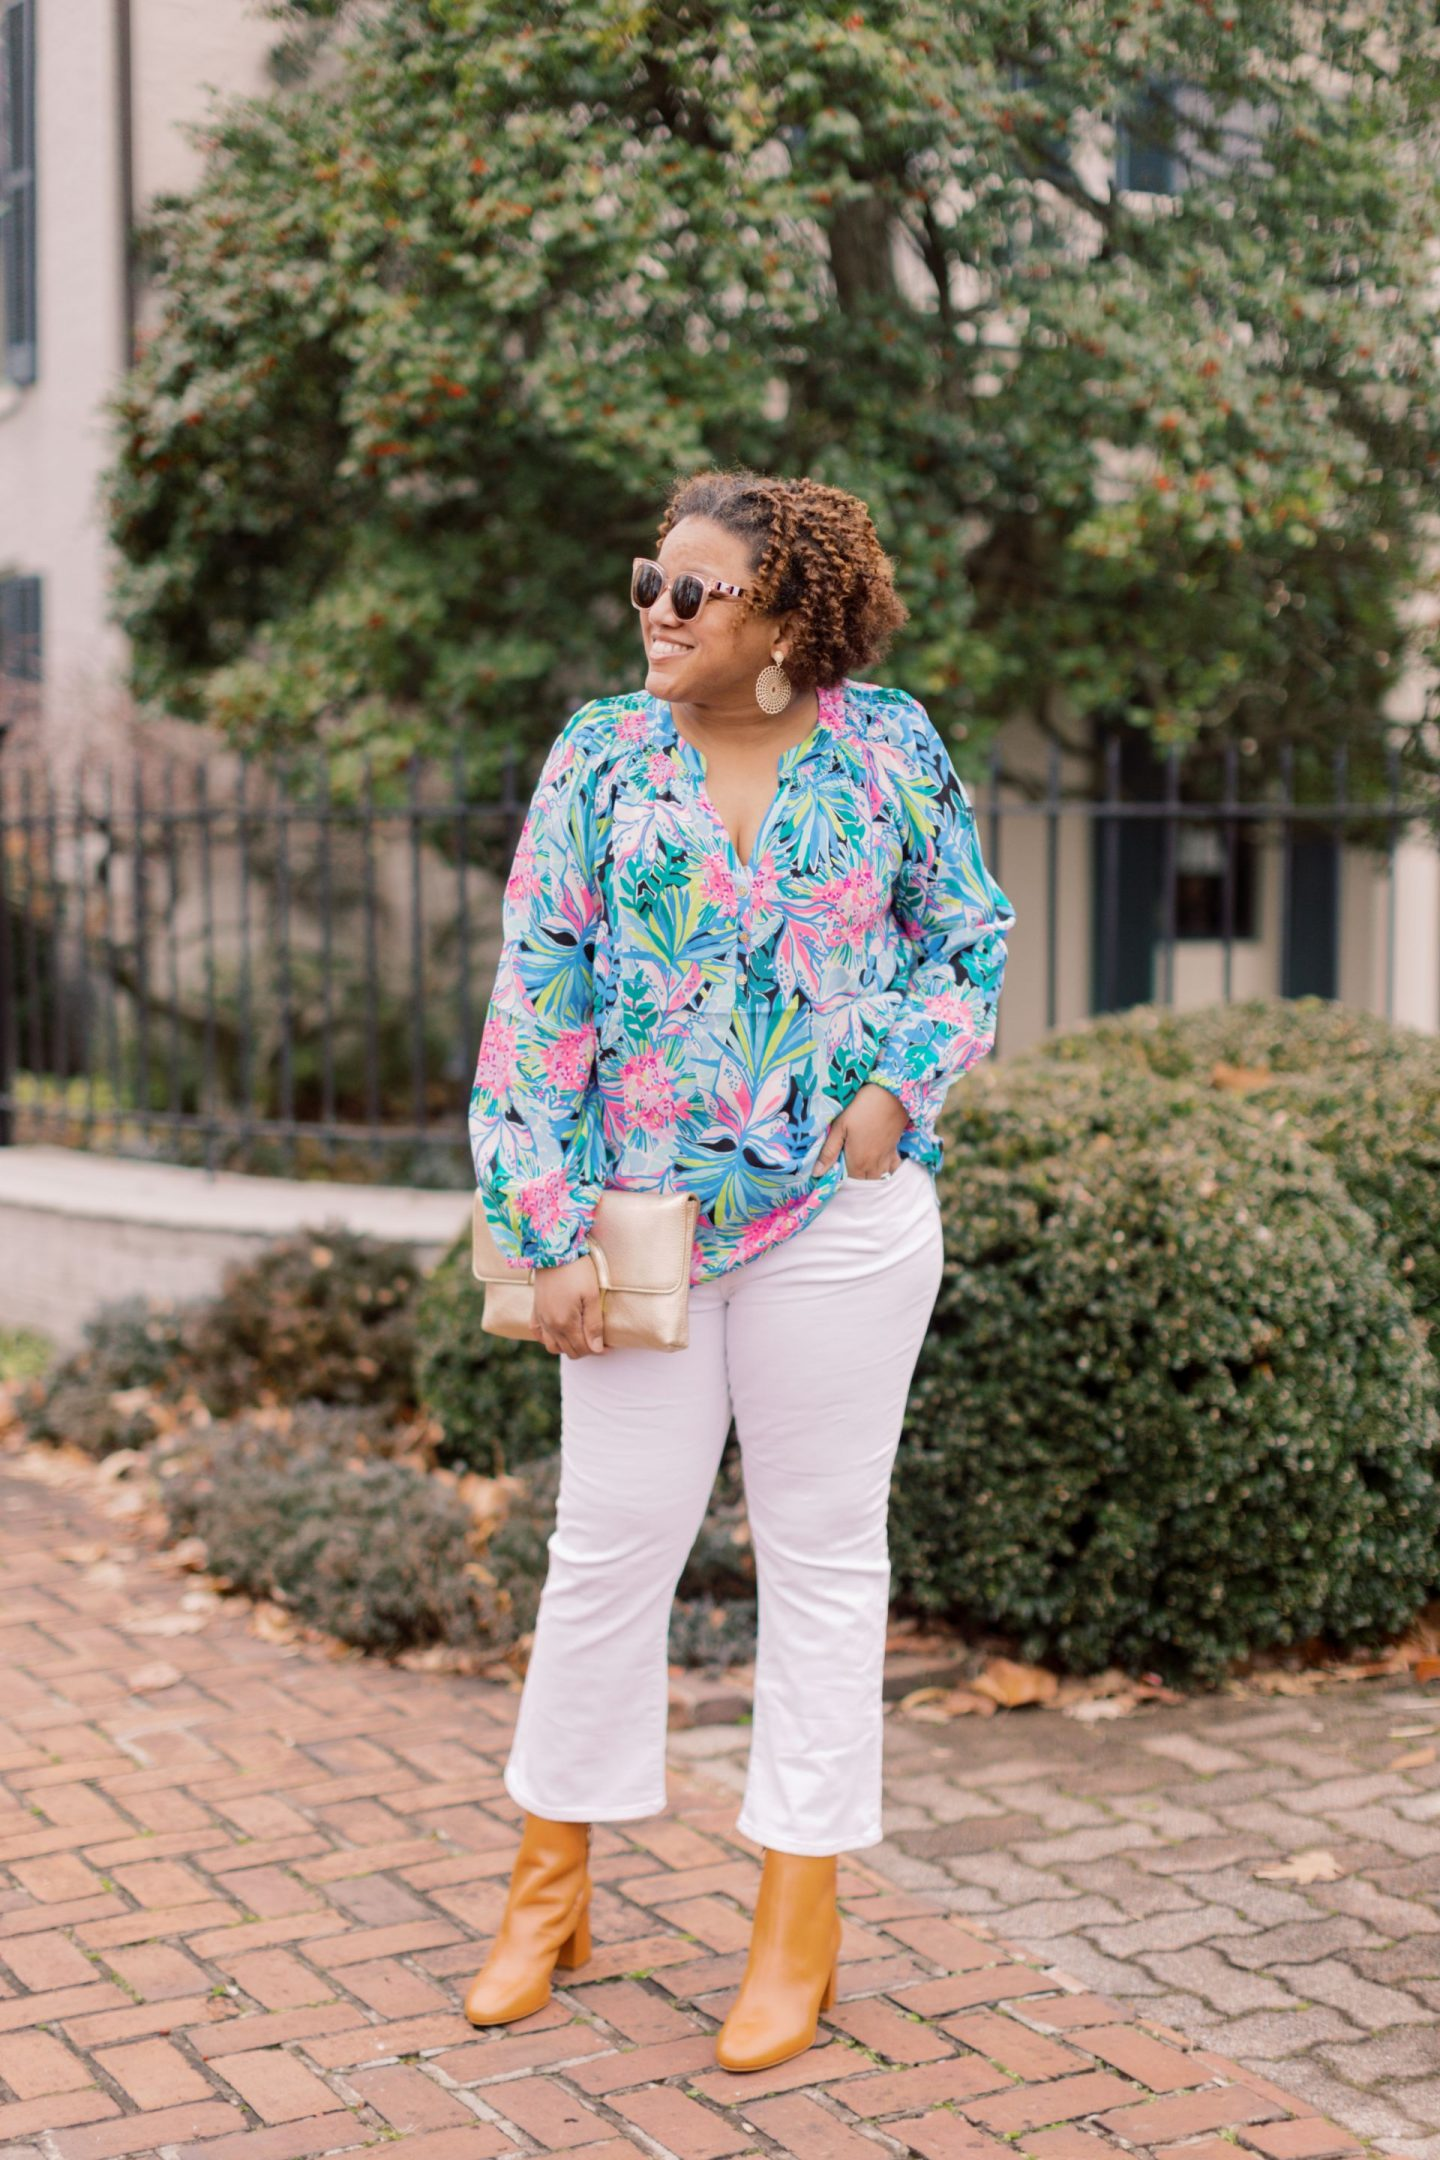 Lilly Pulitzer Sale by popular Kentucky fashion blog, Really Rynetta: image of a woman wearing a Lilly Pulitzer Elsa Silk top with white jeans and tan ankle boots.